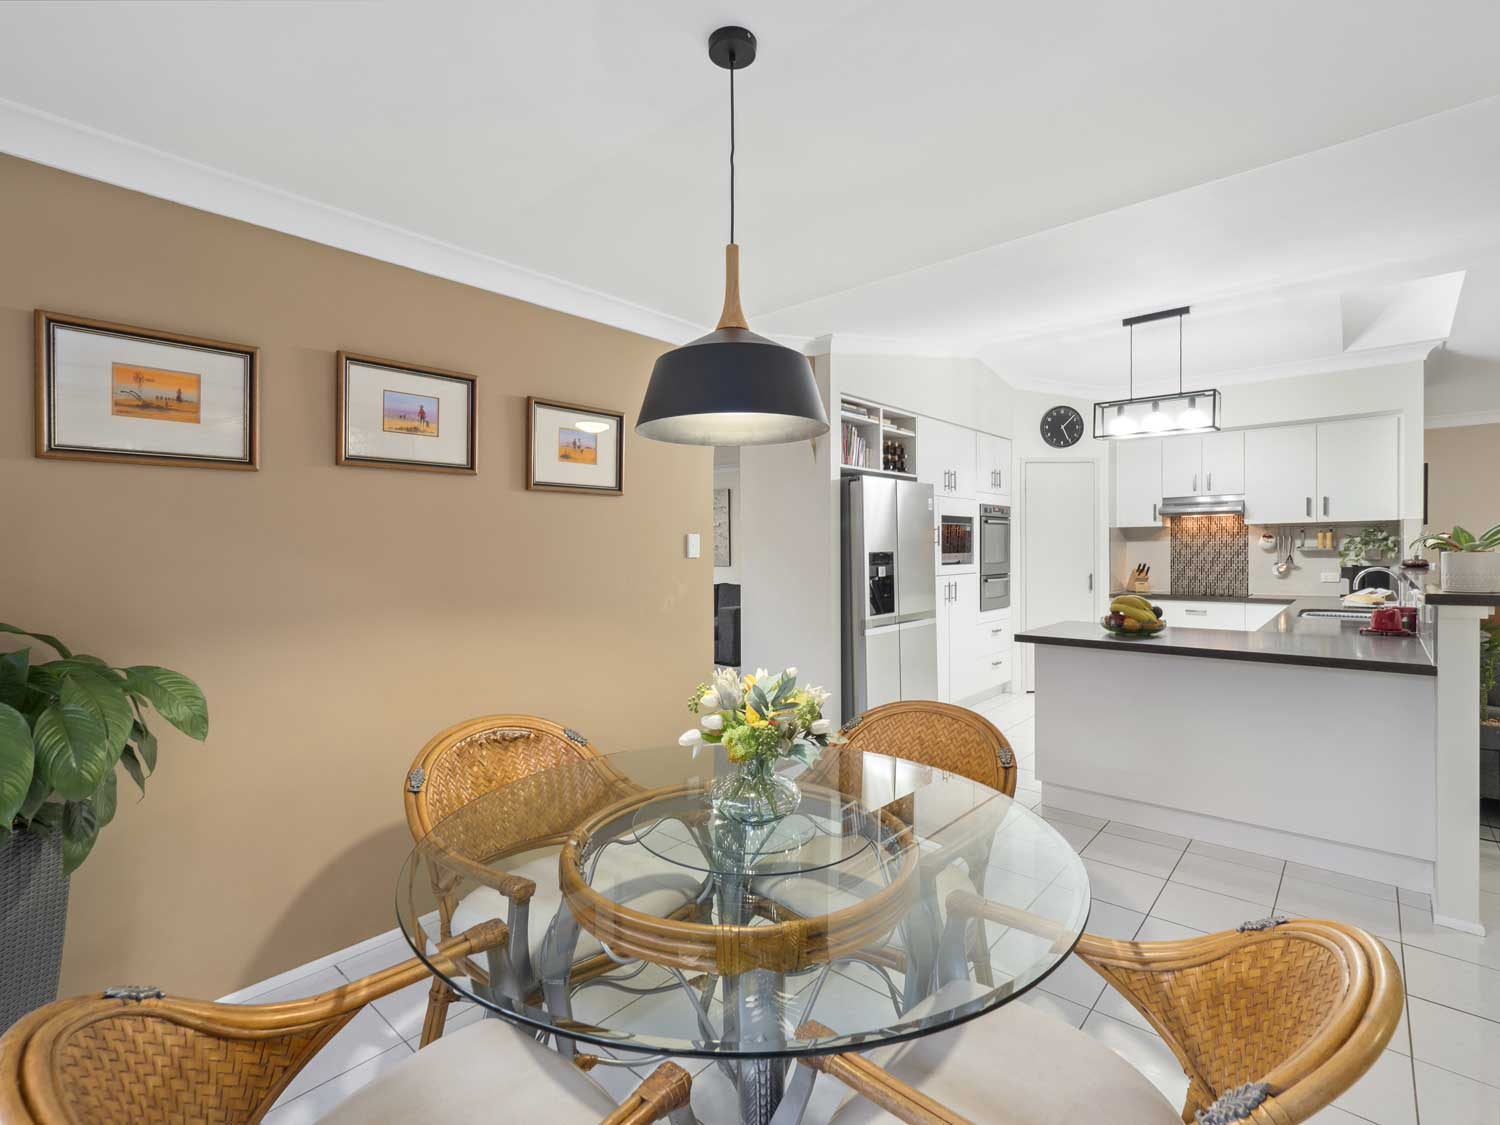 The dining and kitchen areas - photographing a home for sale at Kuraby